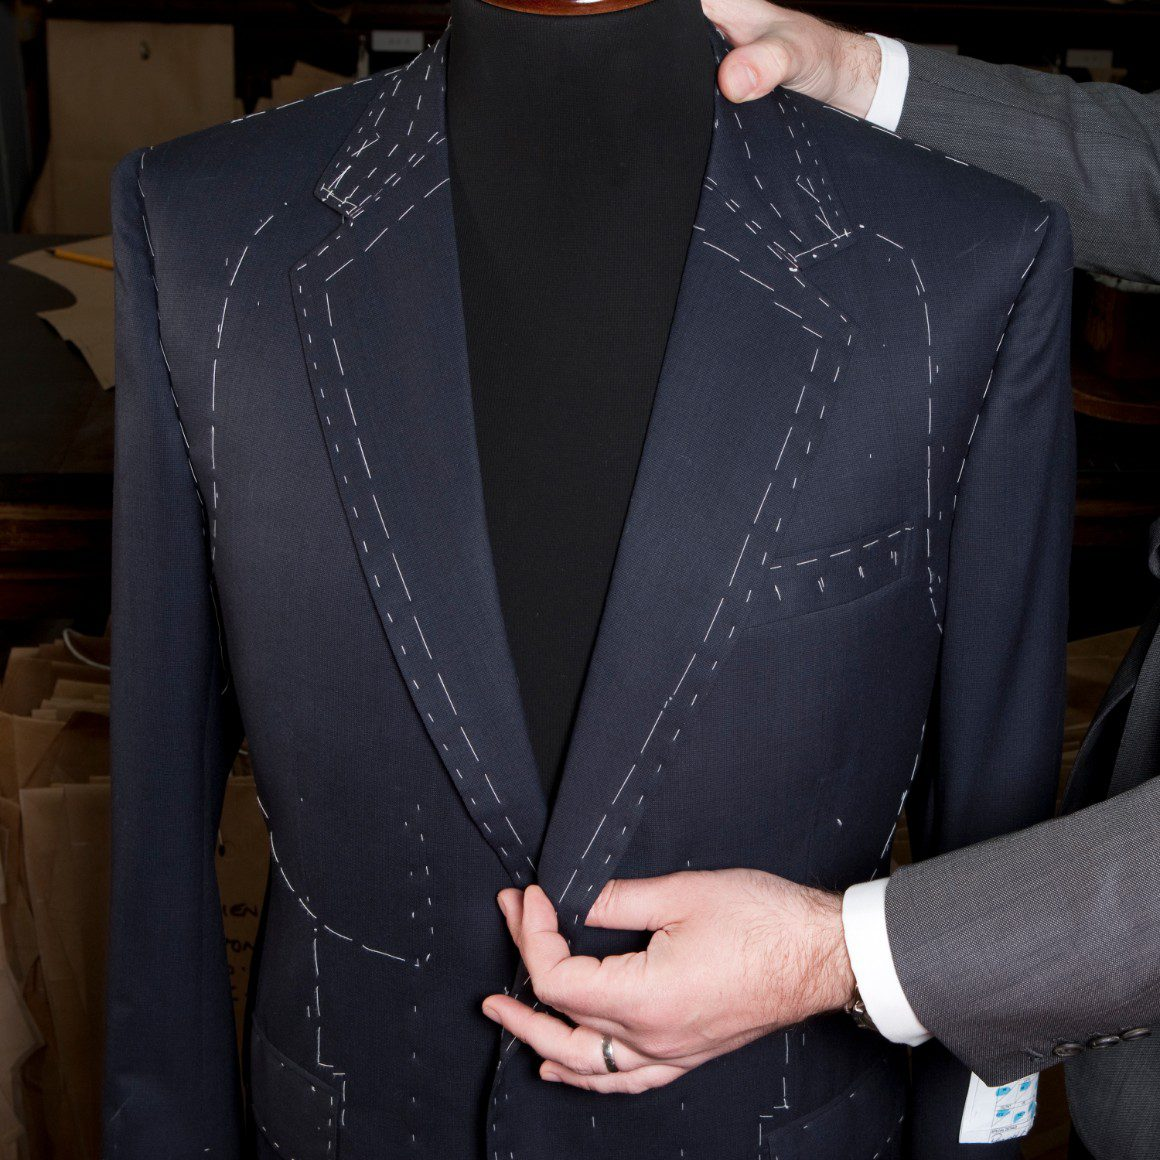 Tailor measuring for a bespoke suit